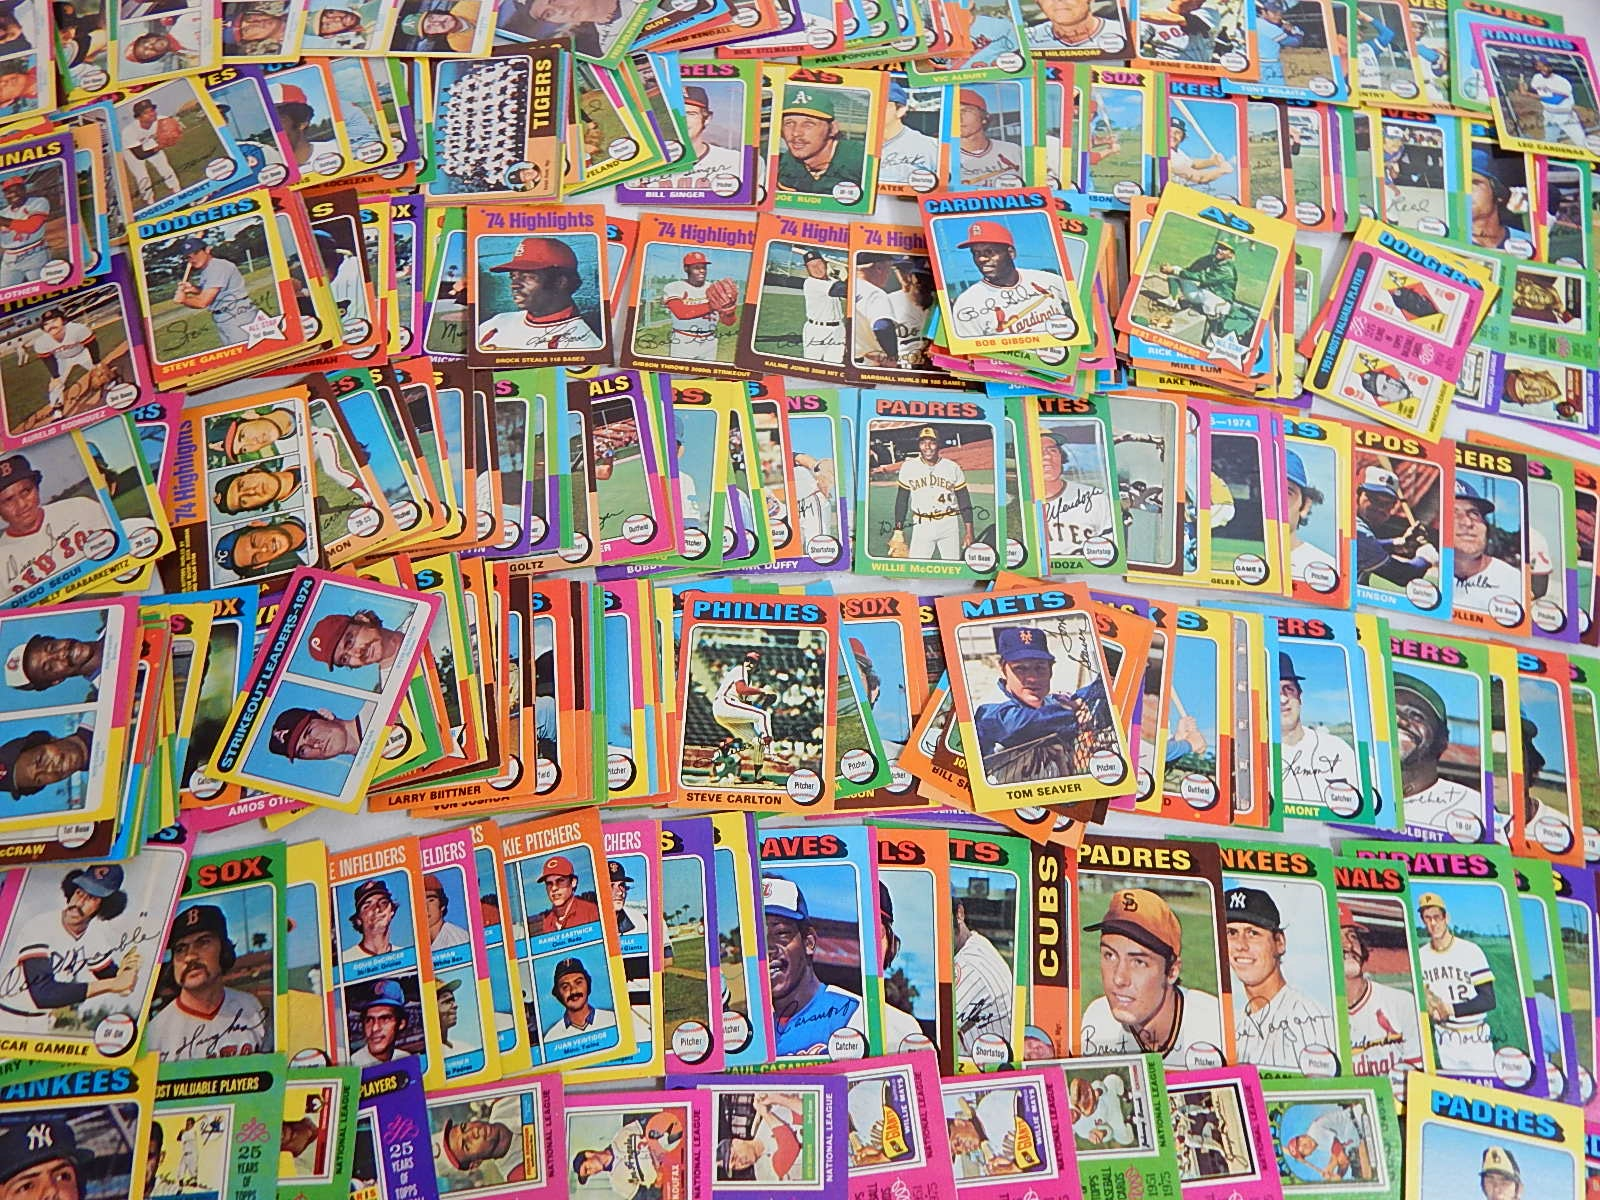 1975 Topps Baseball Card Collection - Over 400 Card Count